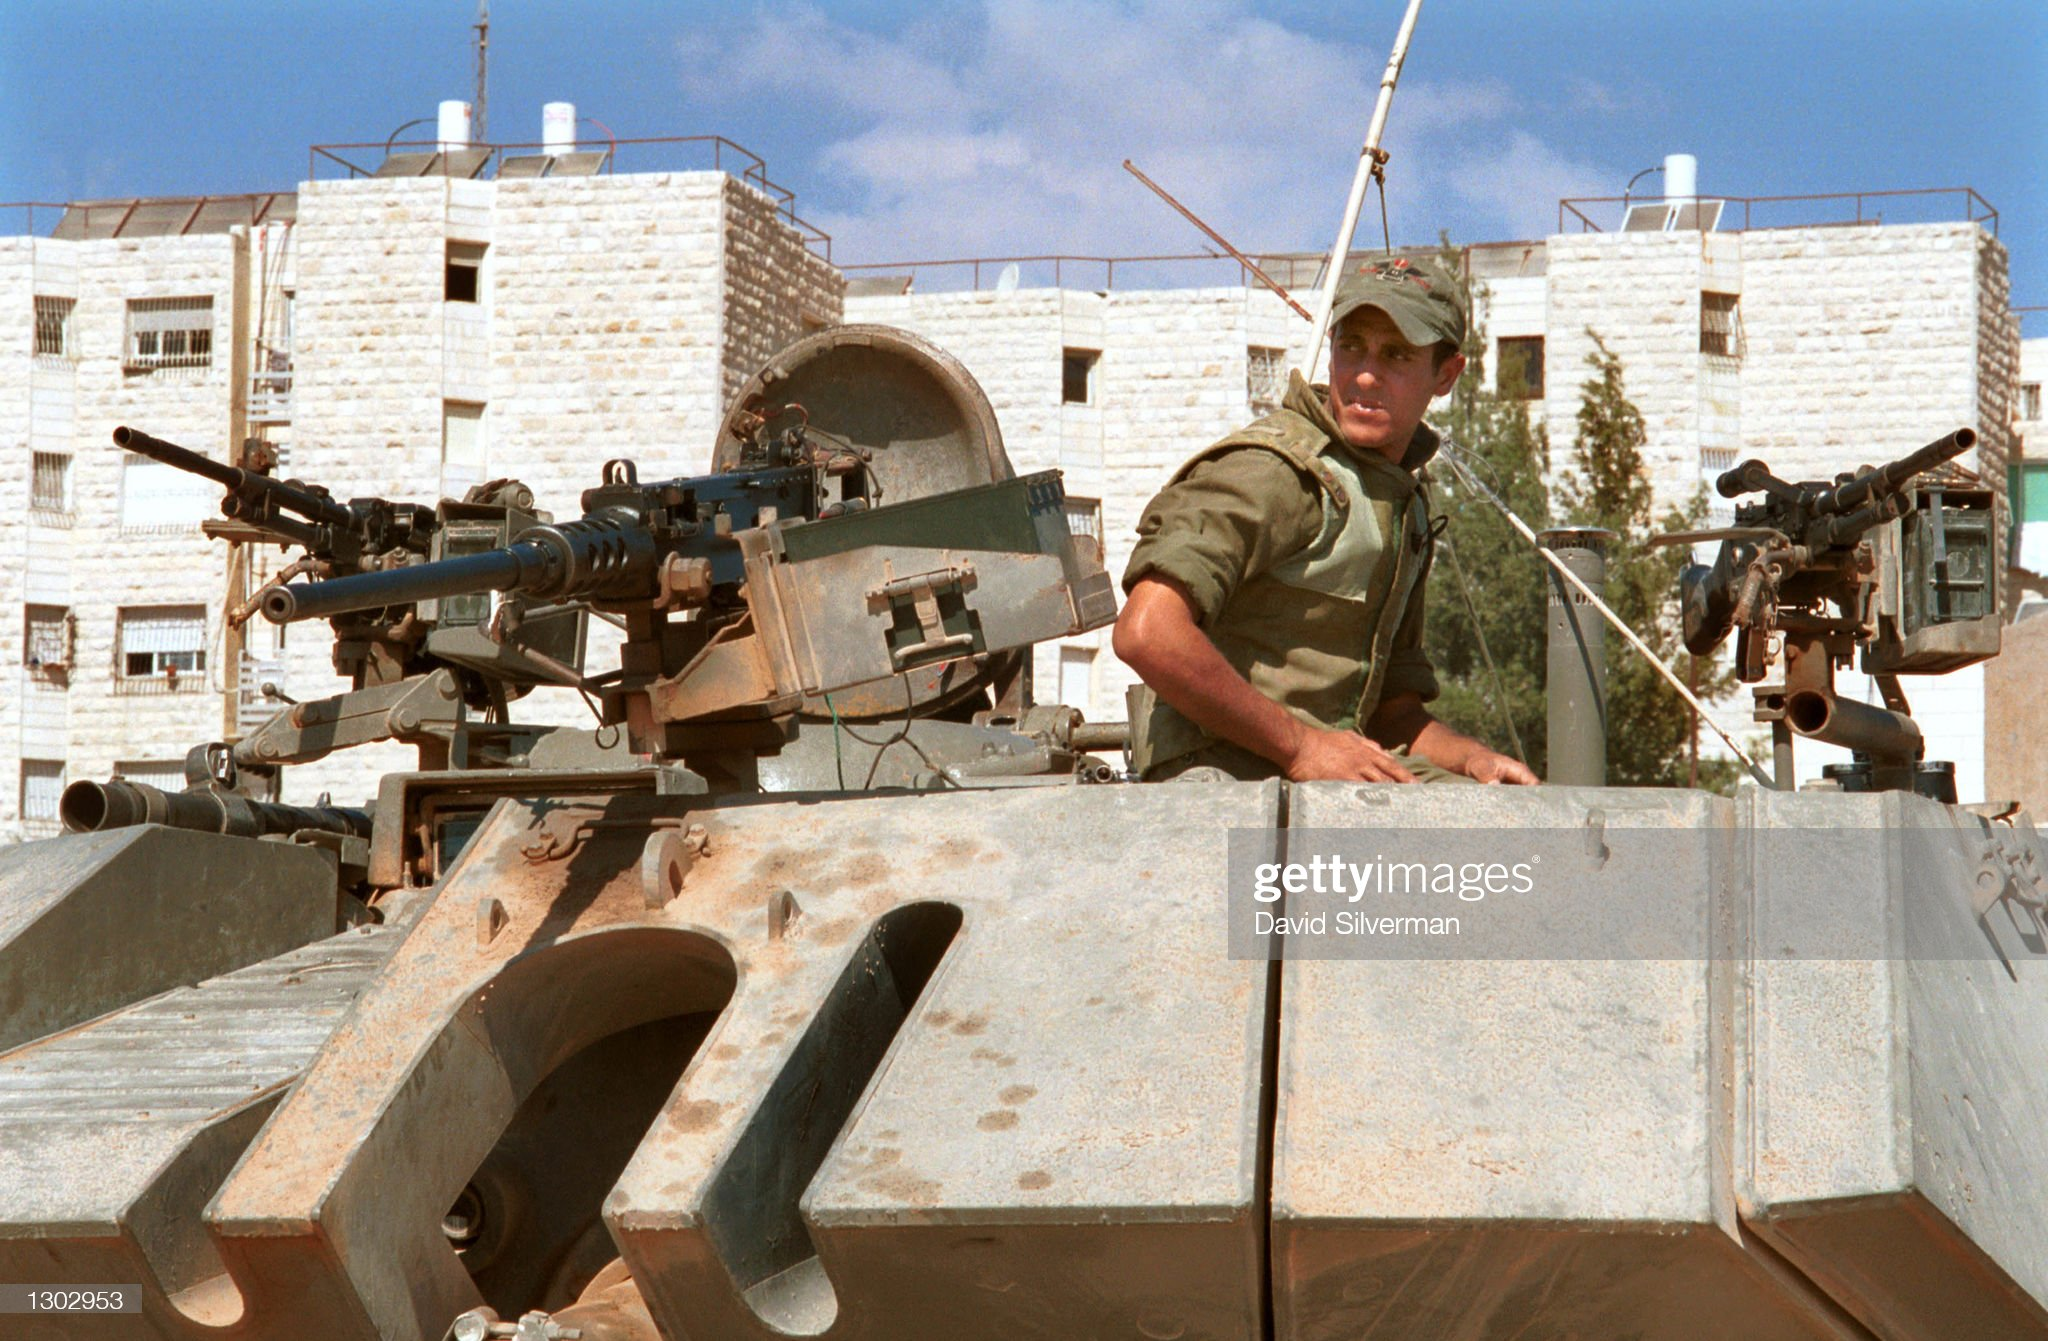 https://media.gettyimages.com/photos/an-israeli-army-m60-tank-maintains-a-hilltop-position-next-to-the-picture-id1302953?s=2048x2048